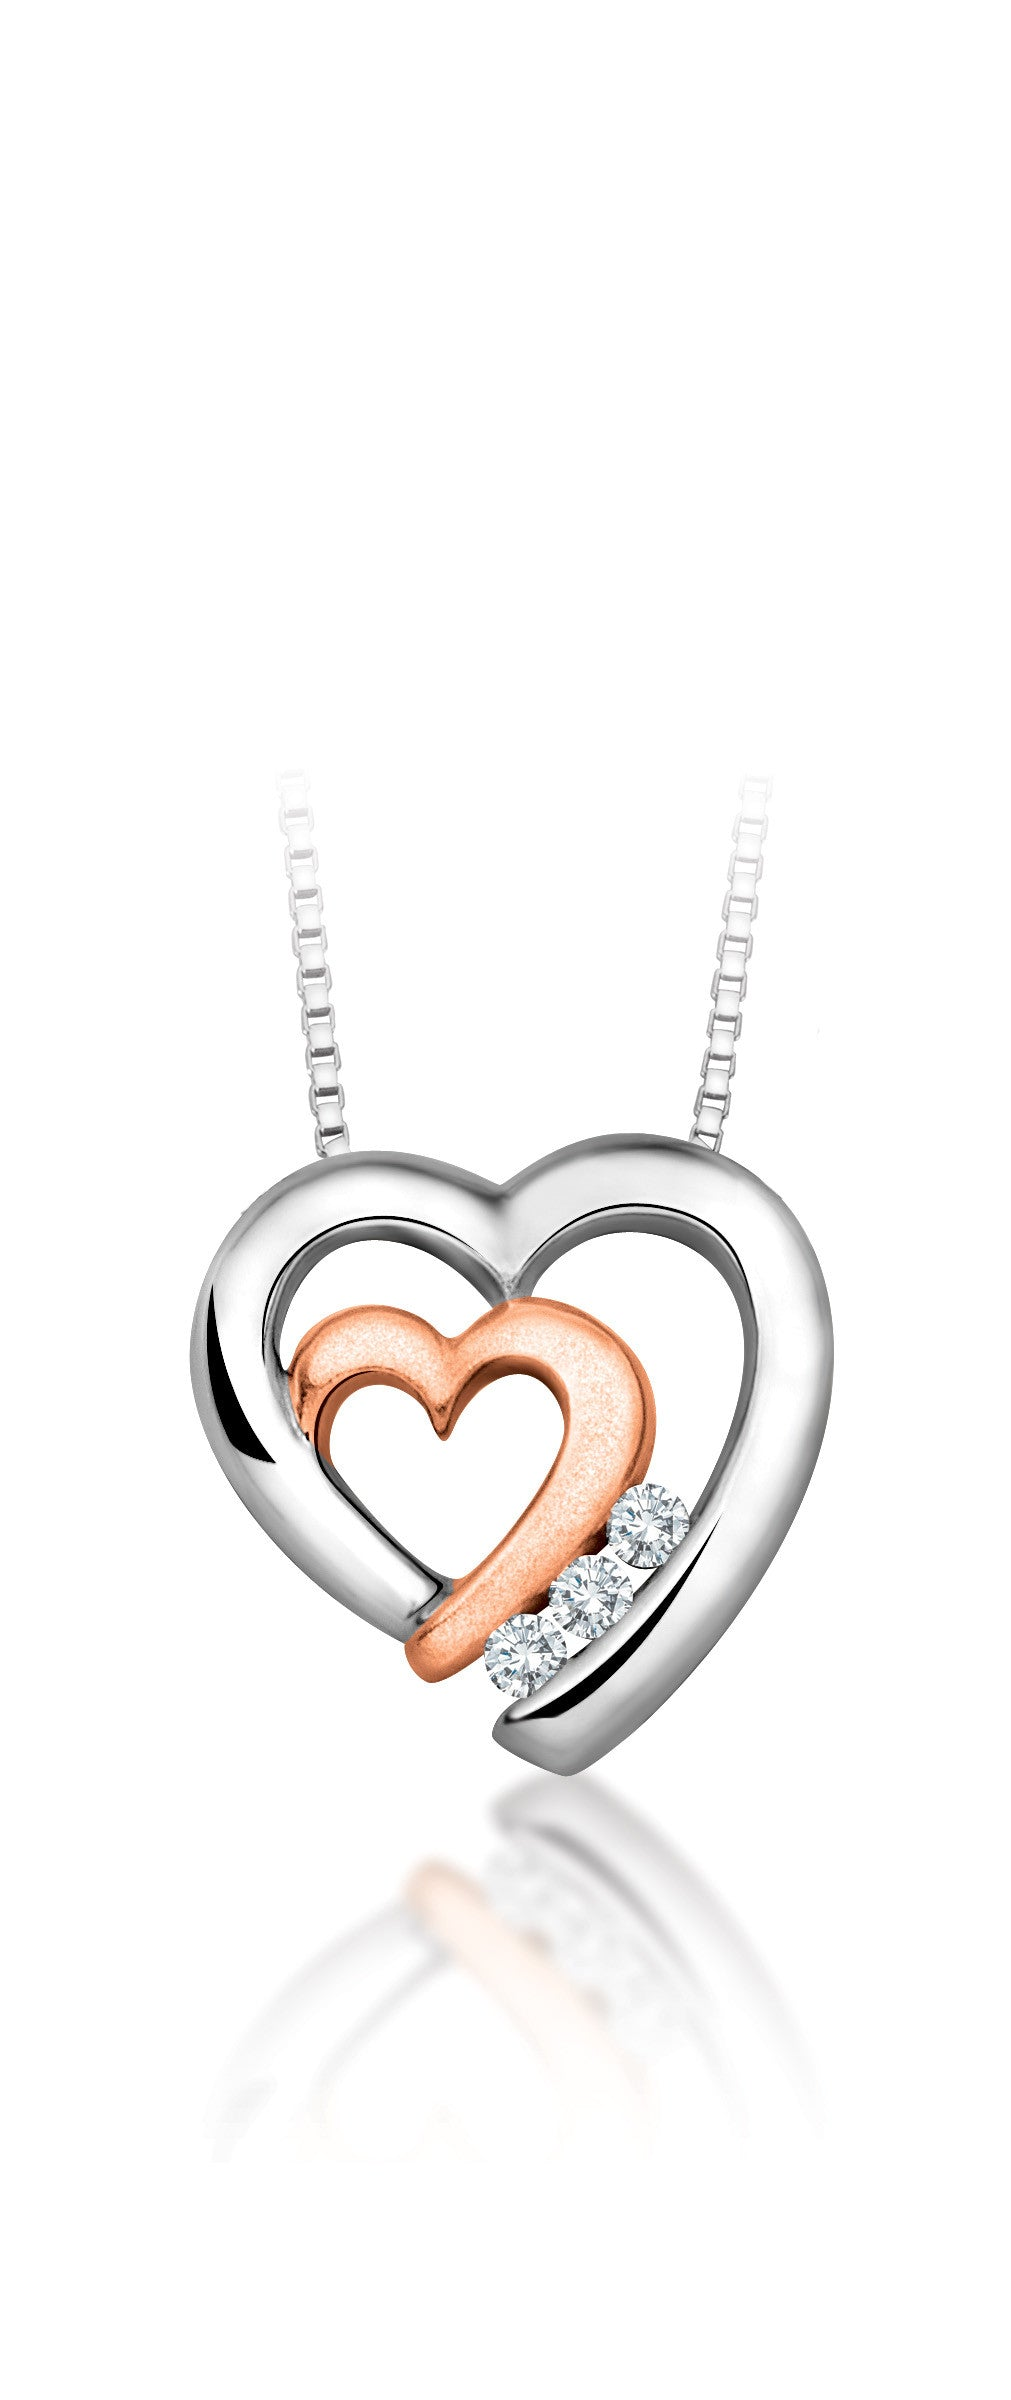 10Kt White Gold with Peek-a-boo Rose Gold Heart Pendant